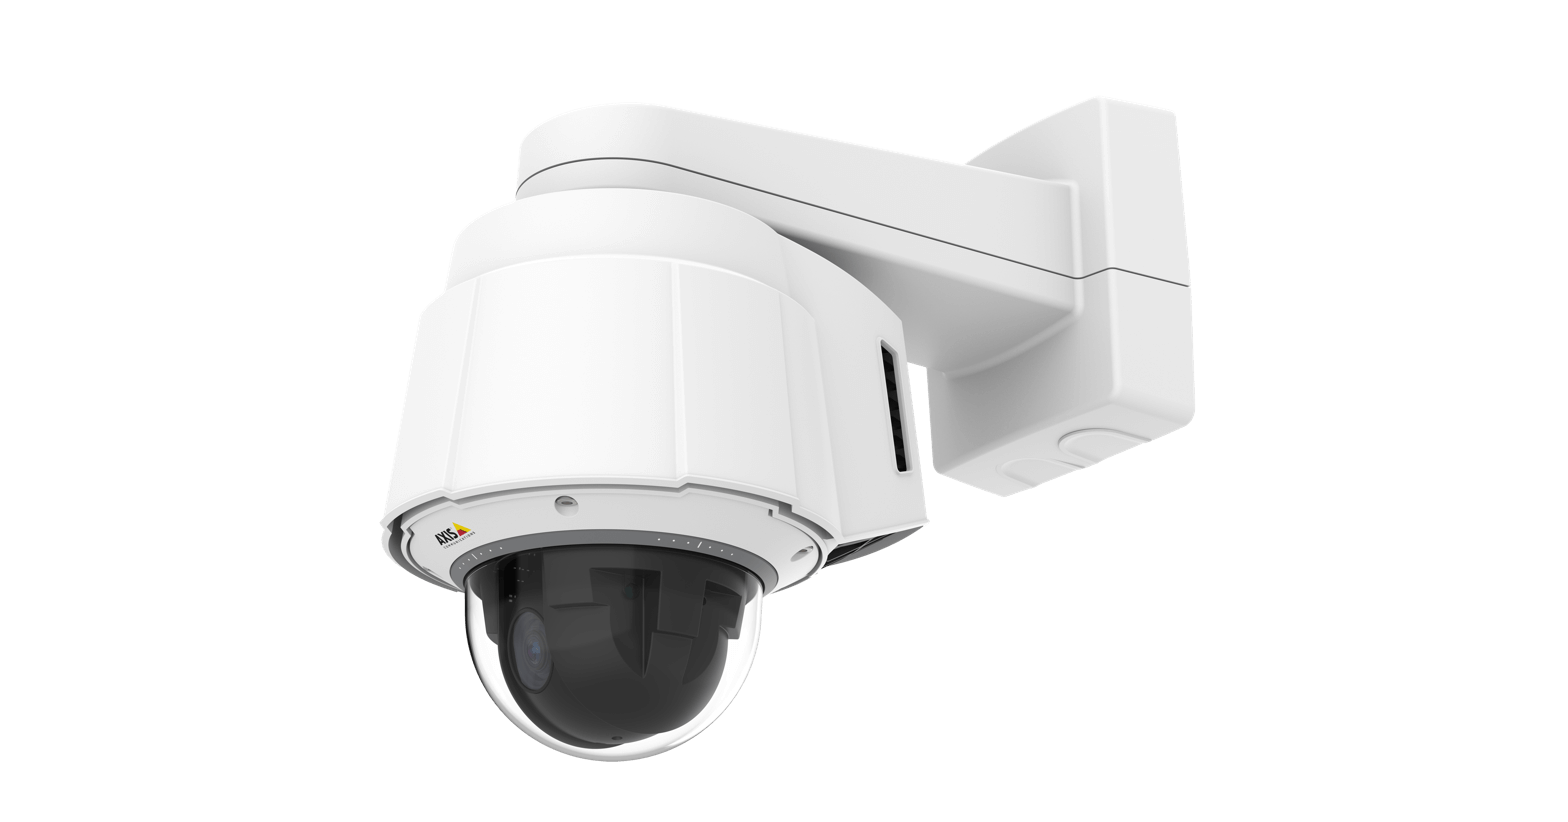 Sales & custom installation of CCTV, Video Surveillance & Physical Access Control Systems for Residential application.